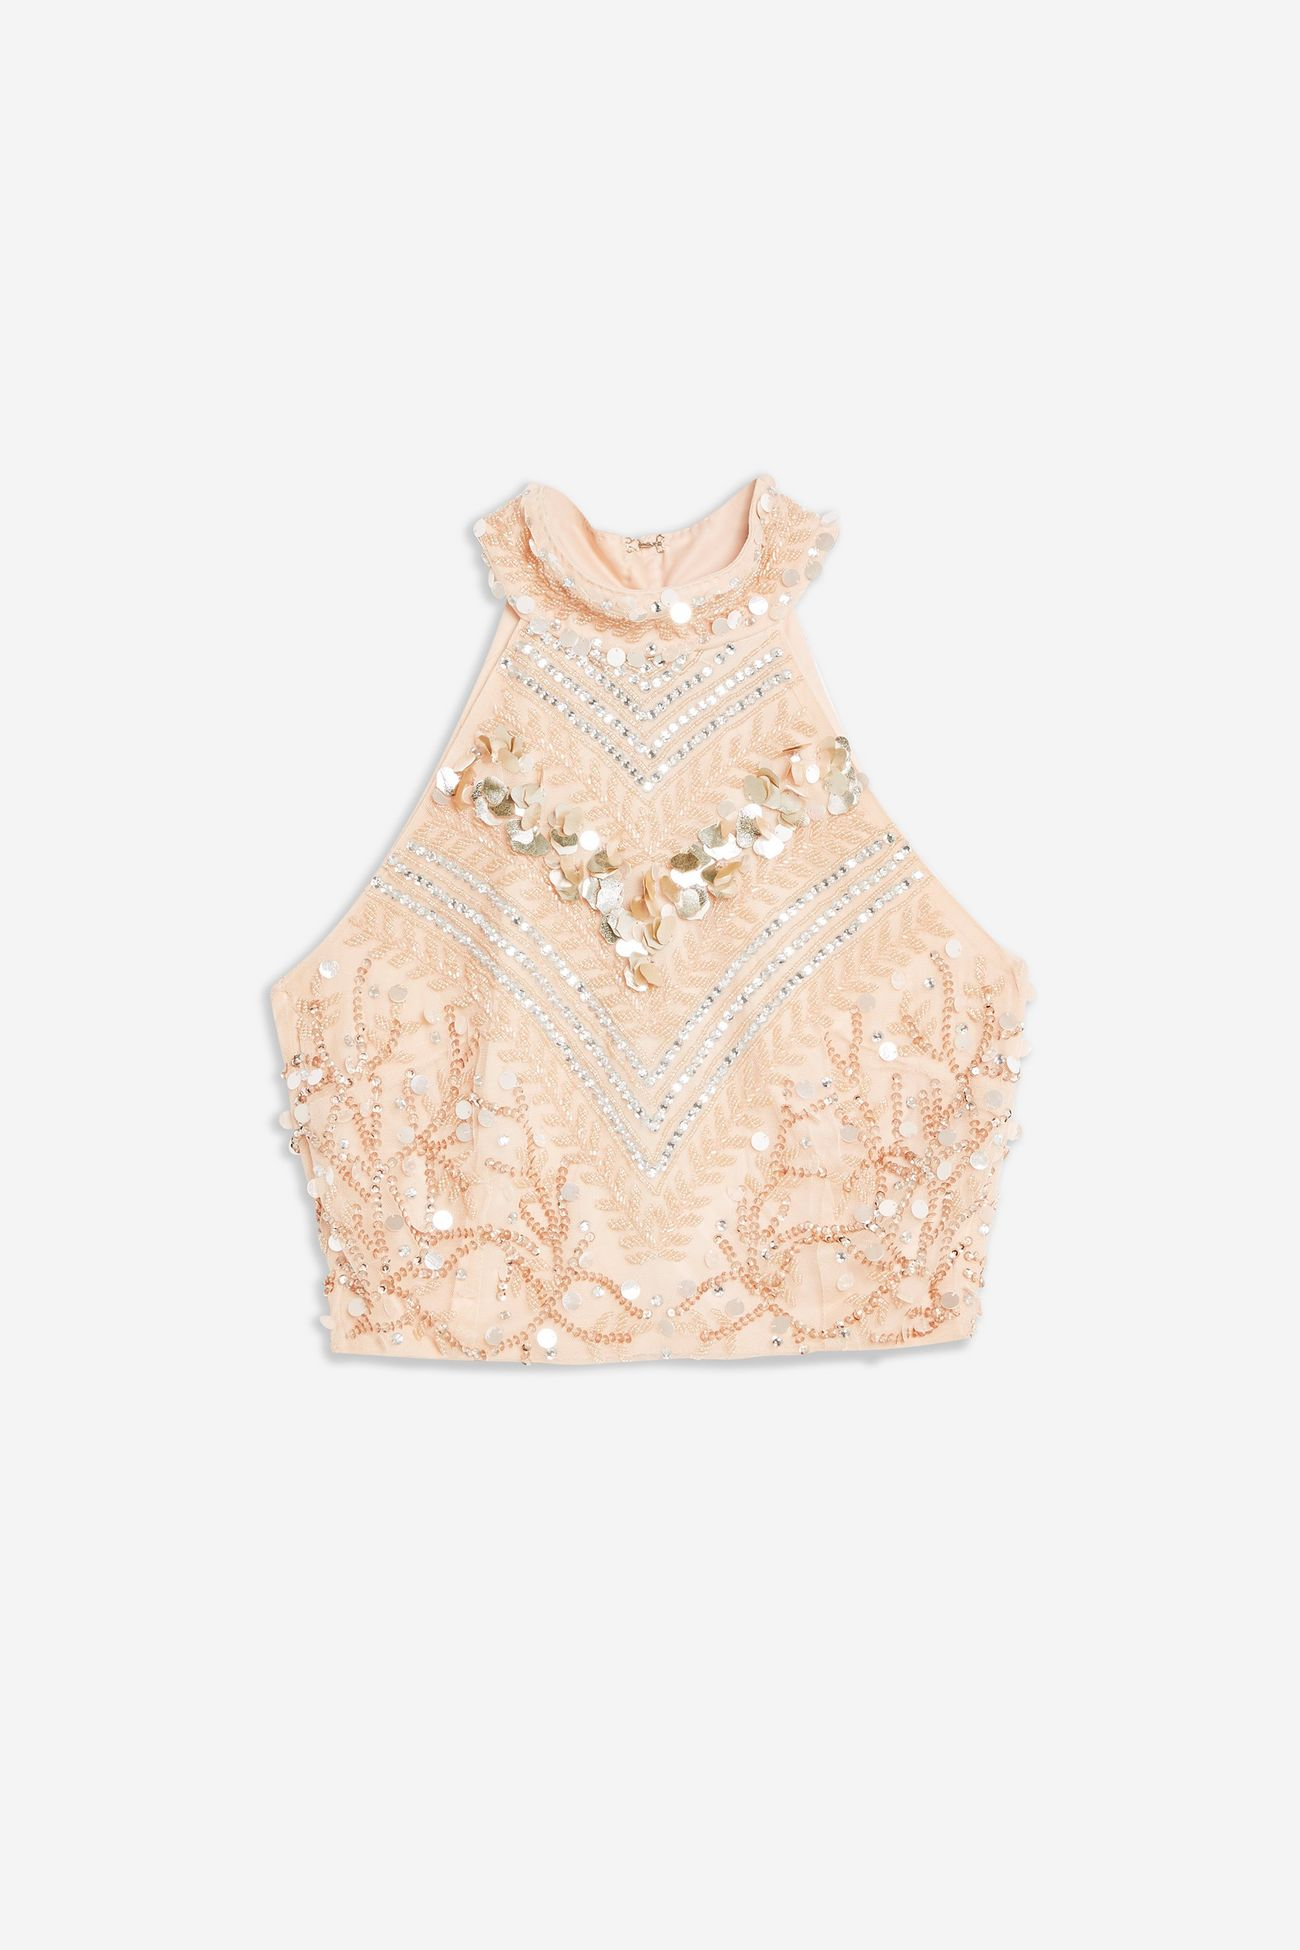 Embellished Top By Lace & Beads